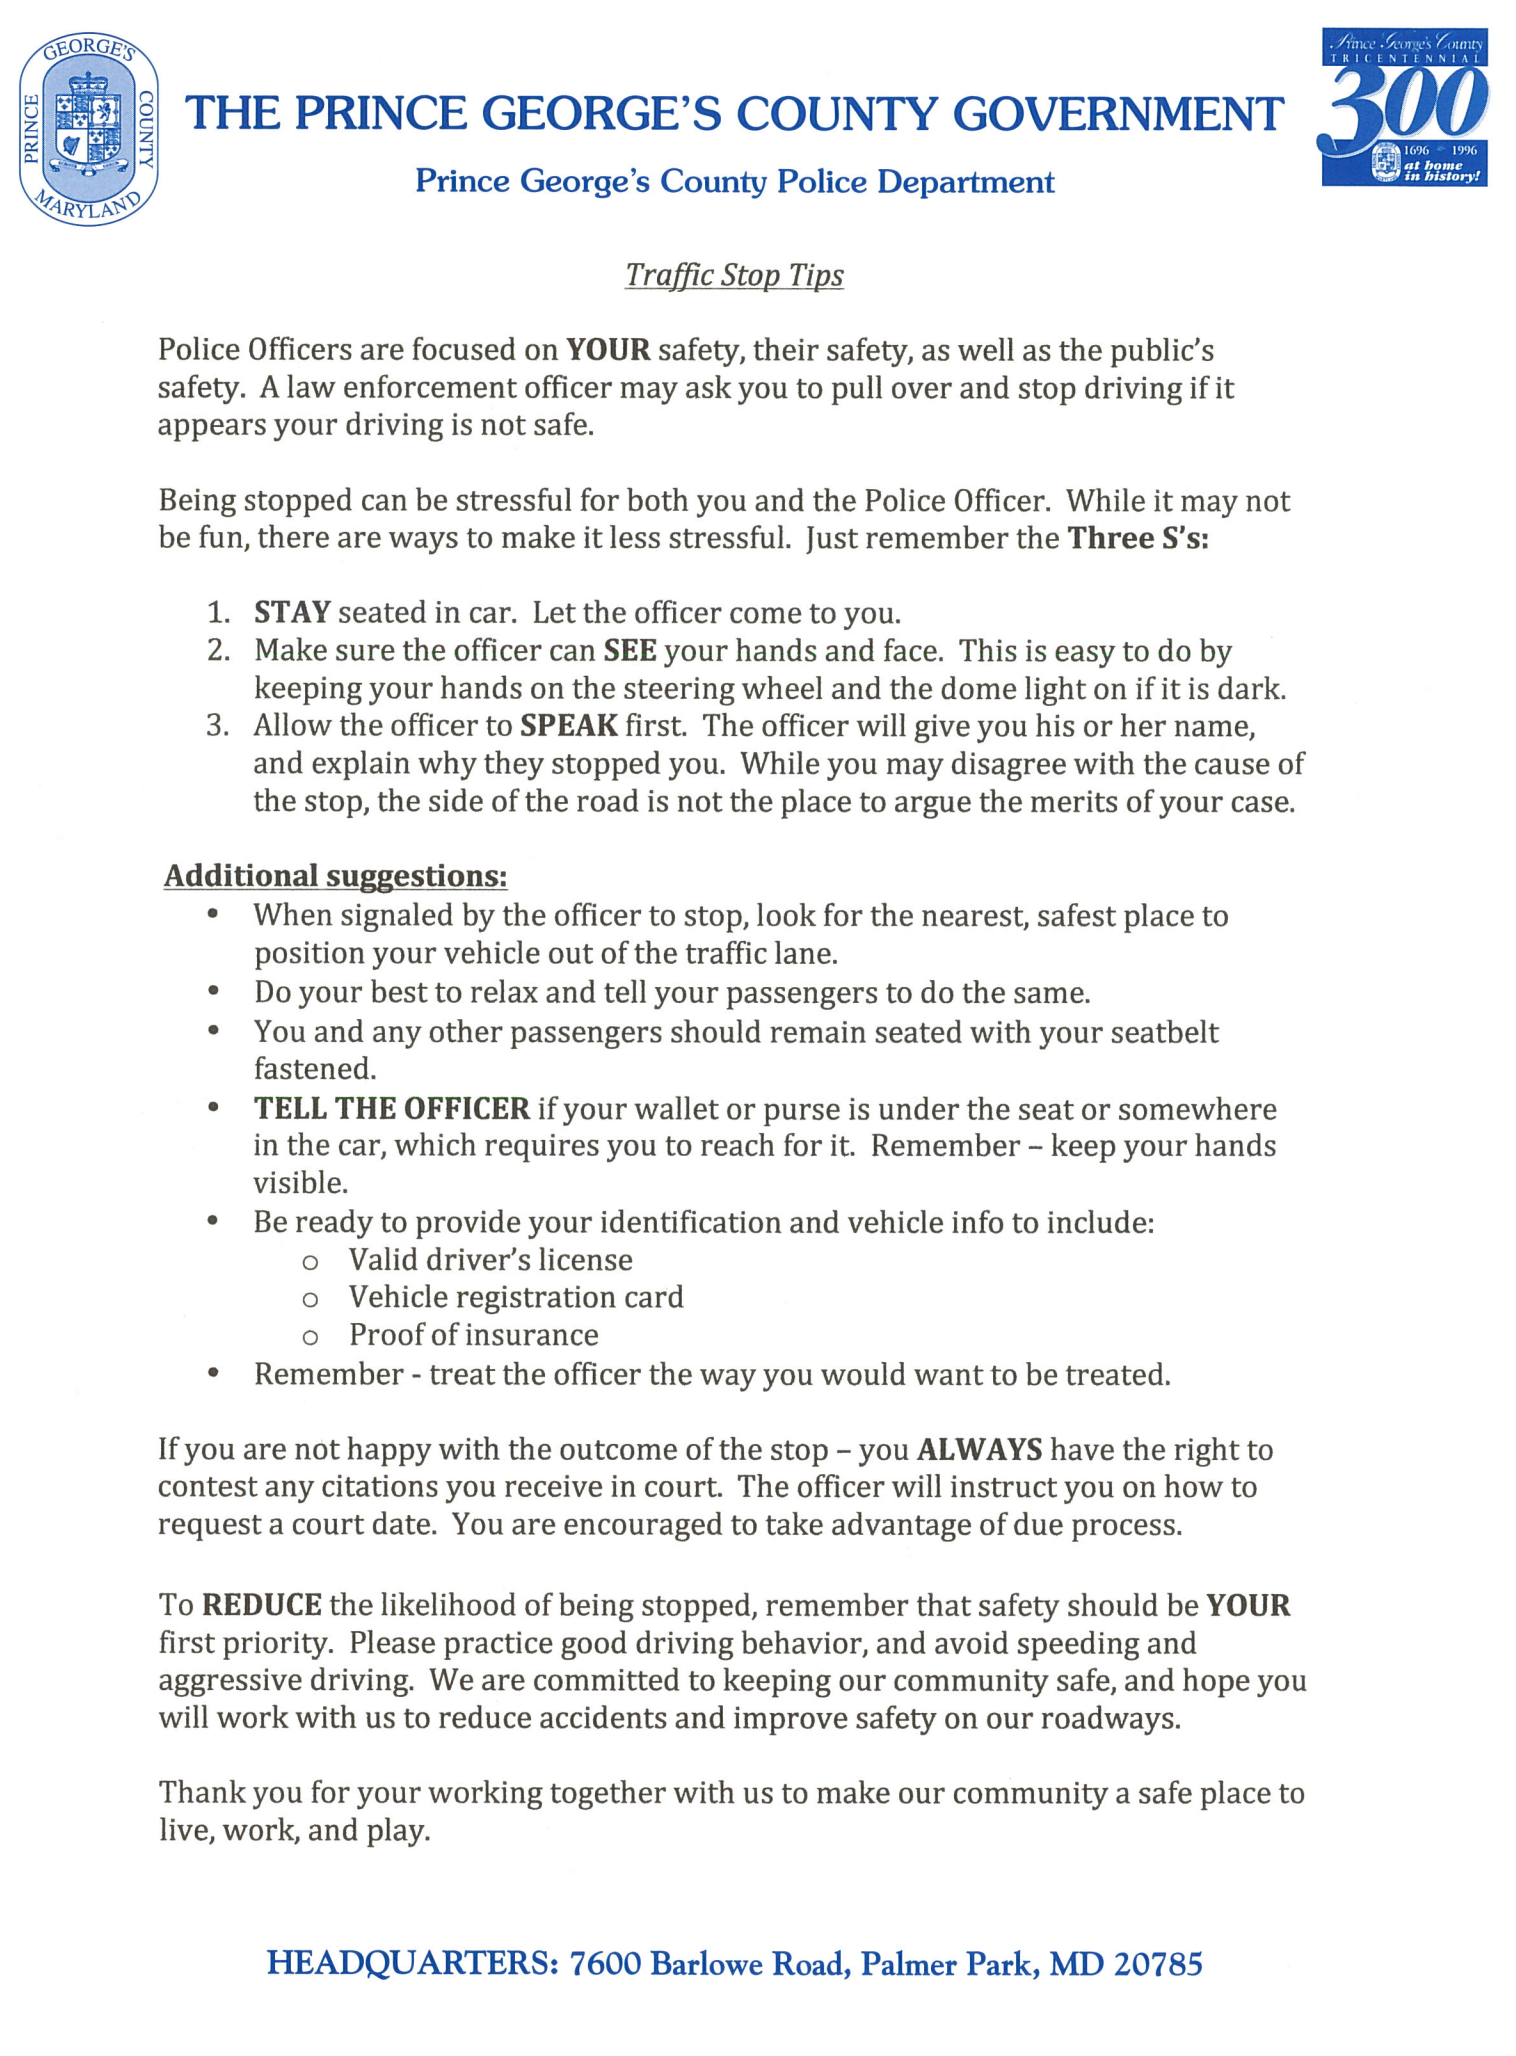 PGPD Traffic Stop Tips